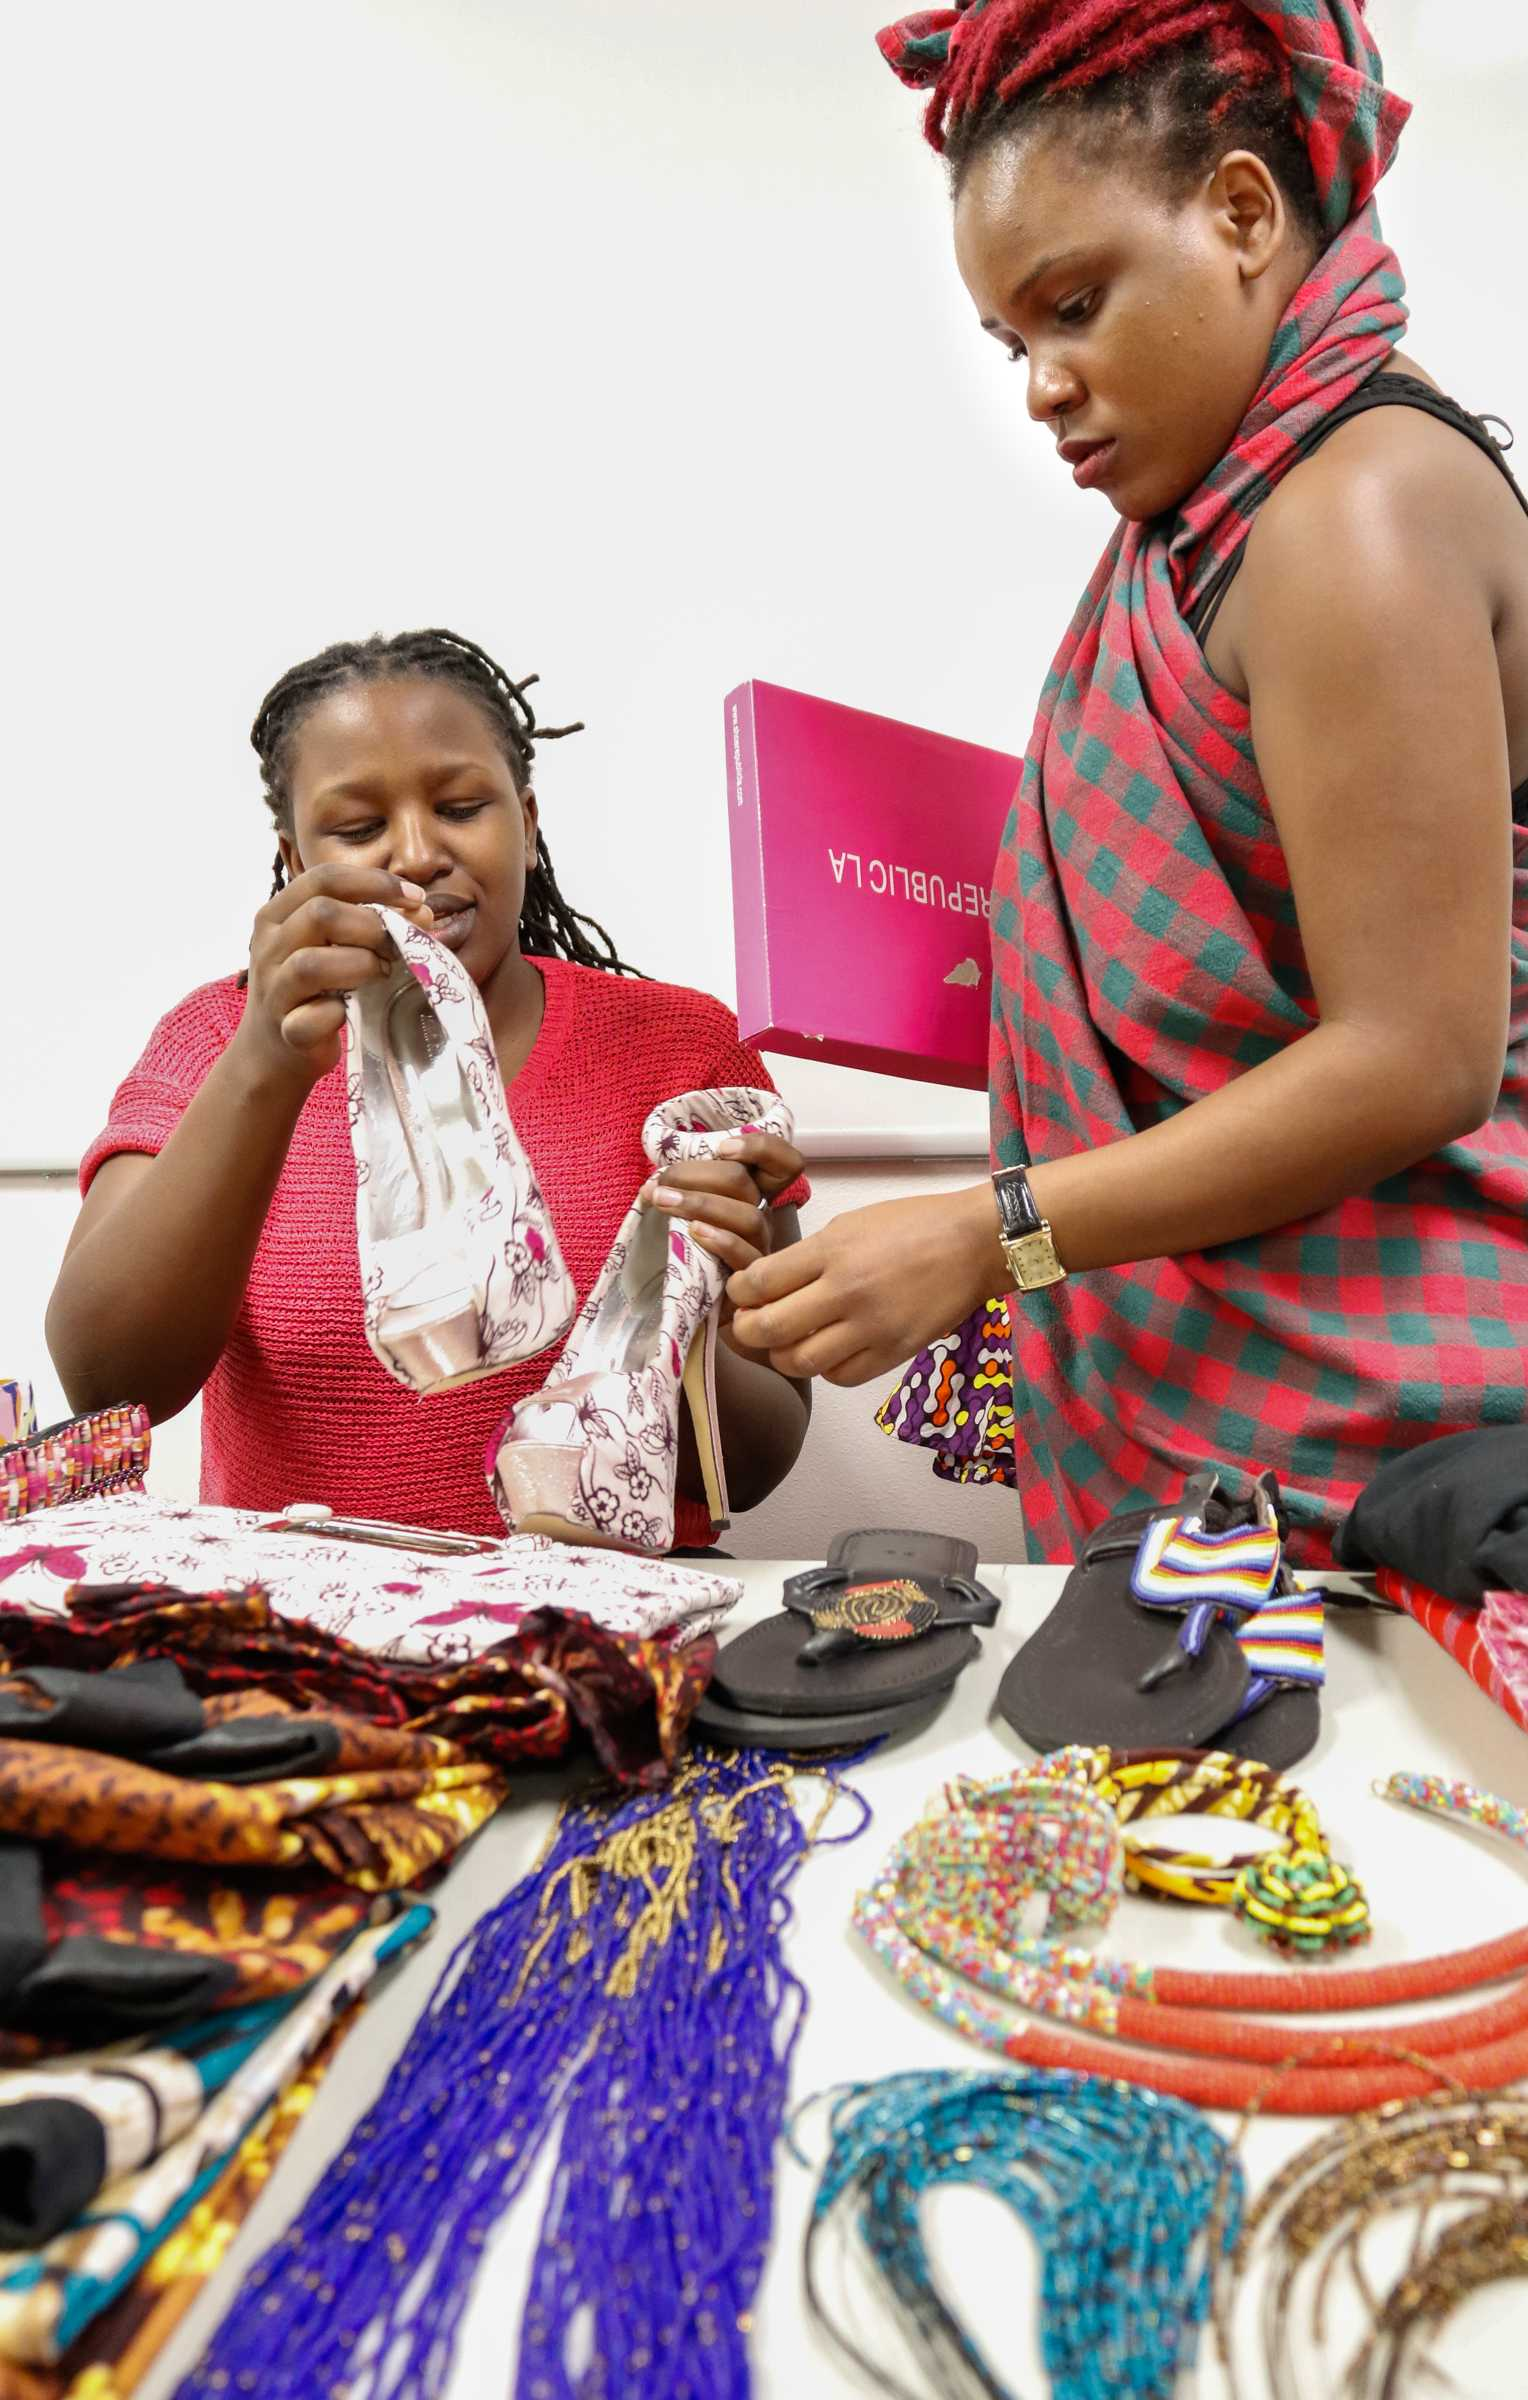 CSUN student shown shopping at clothing and jewelry booth